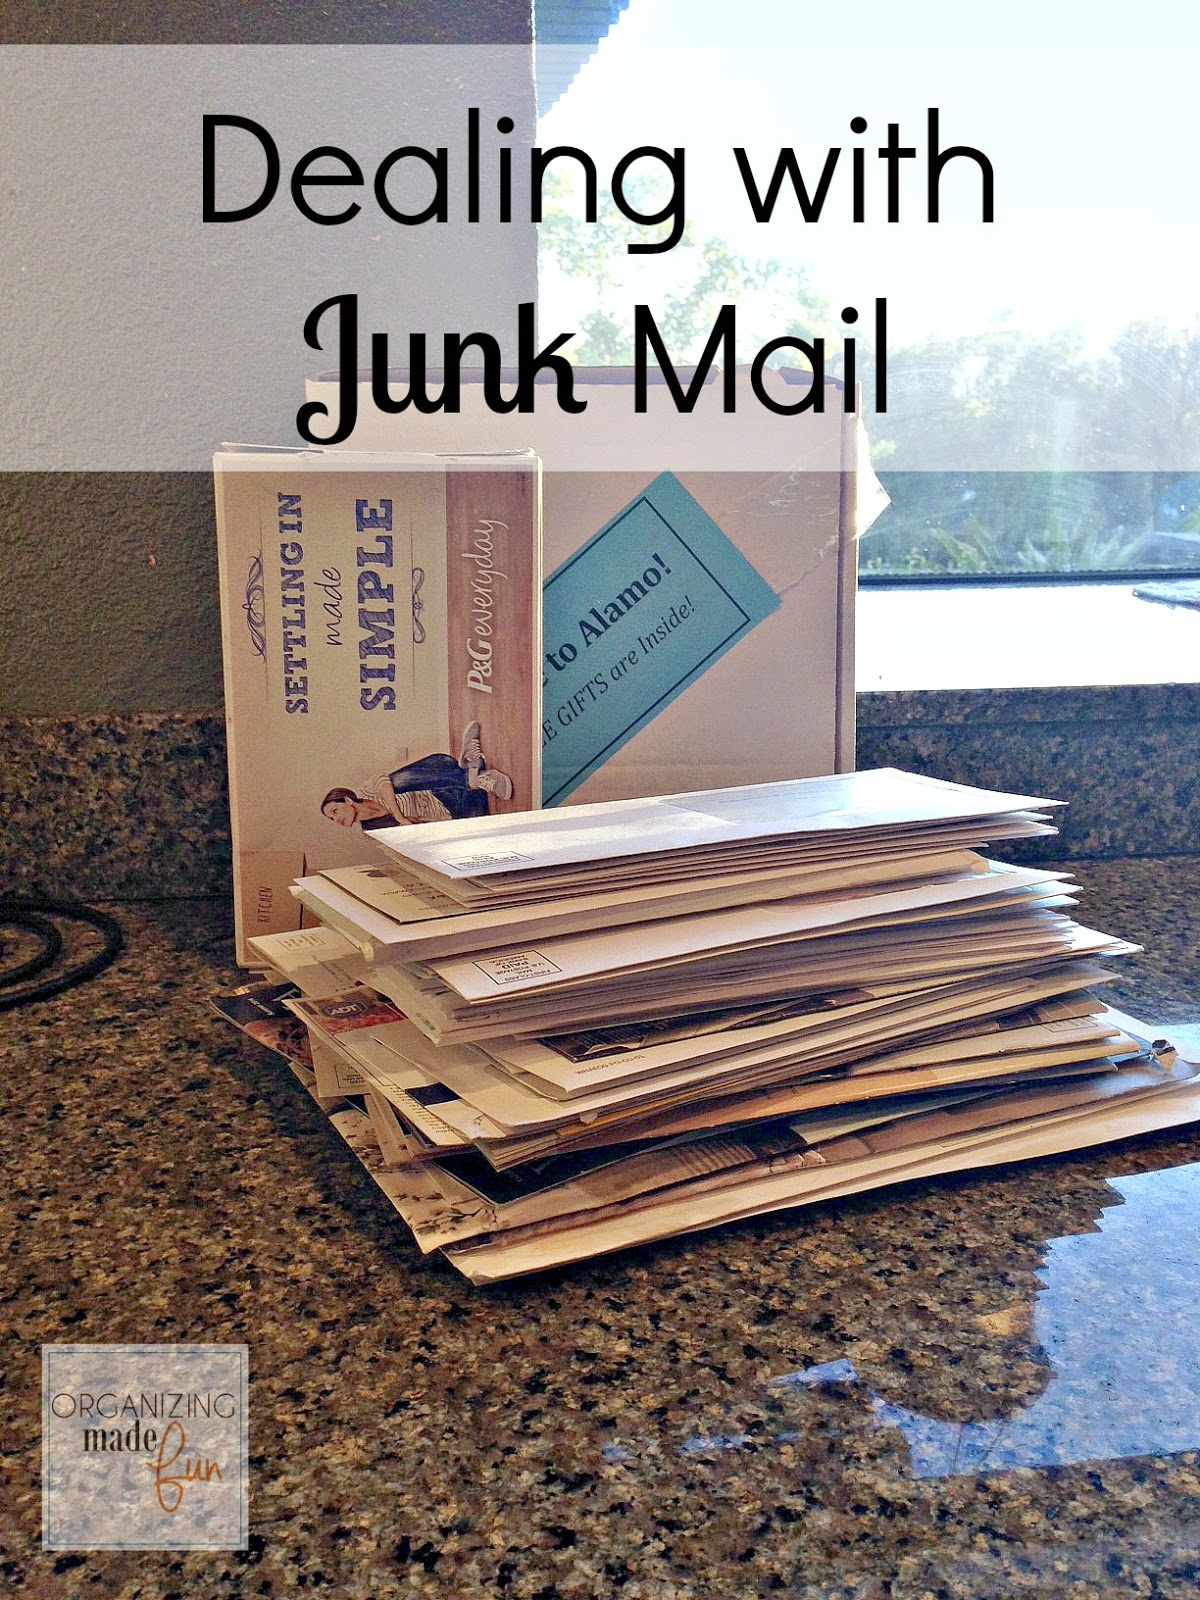 Dealing with Junk Mail | Organizing Made Fun: Dealing with